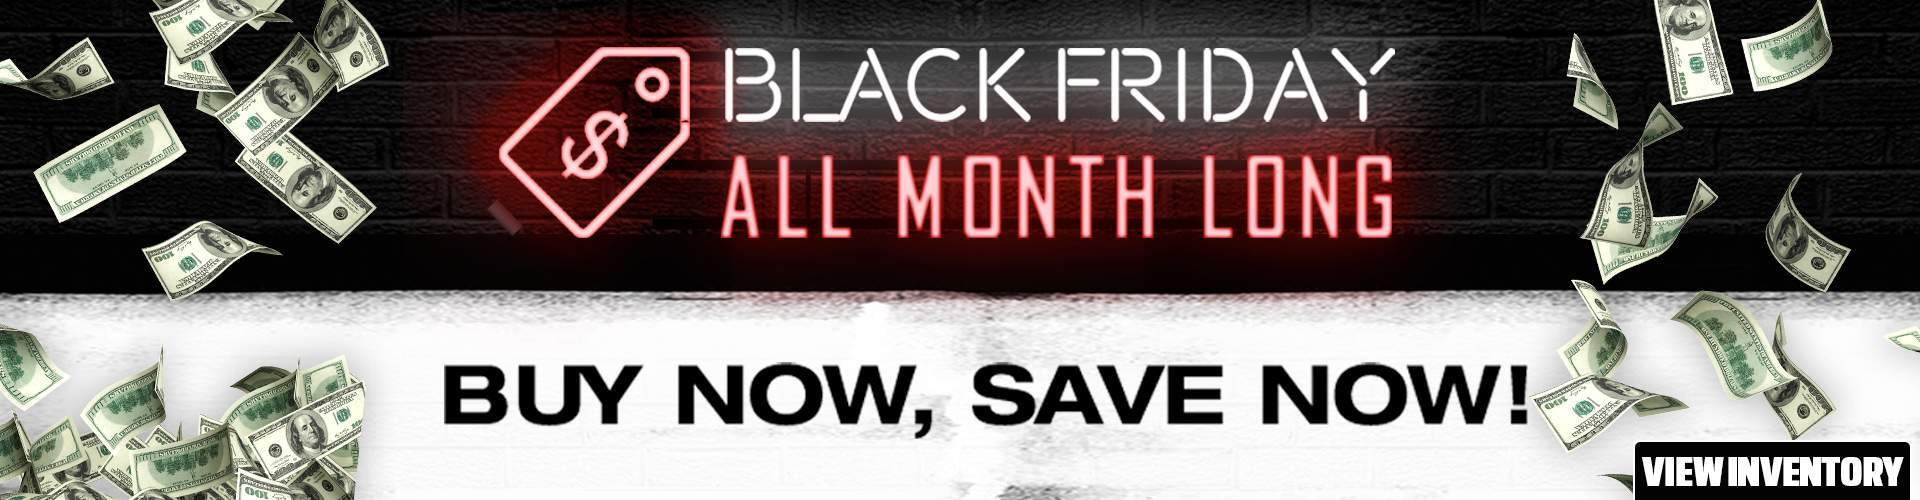 Black Friday All Month!